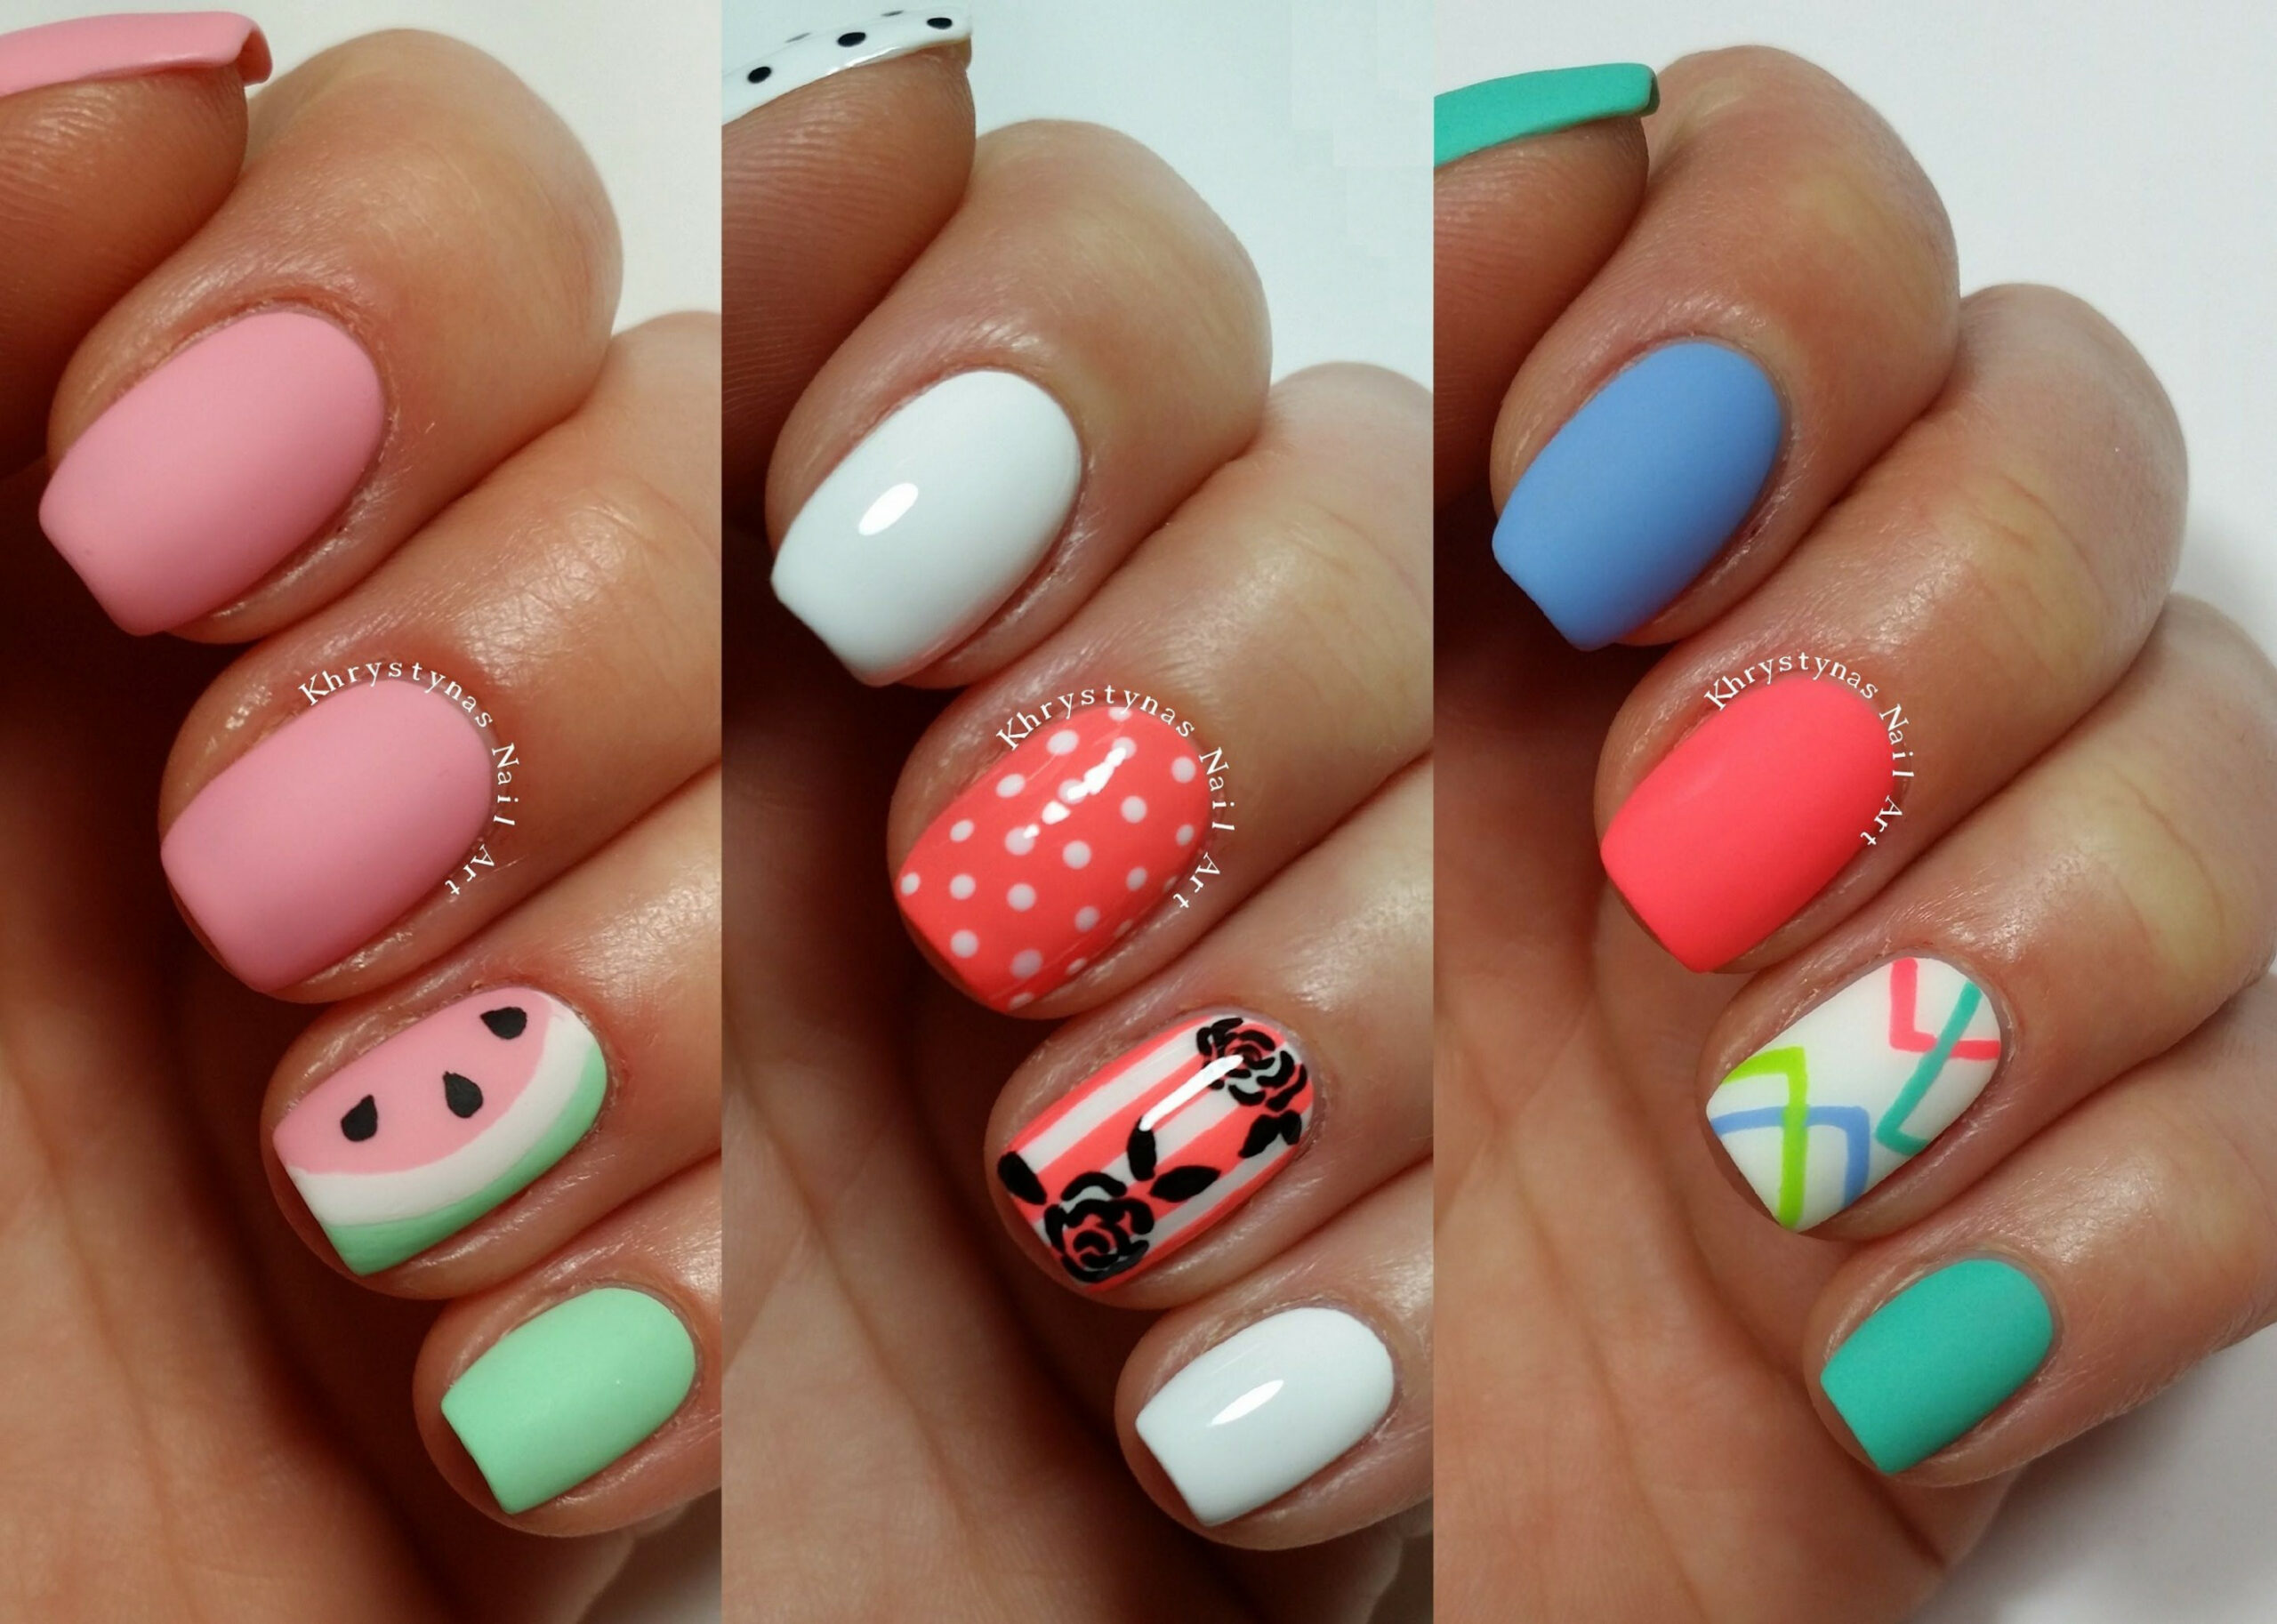 8 Easy Nail Art Designs for Short Nails  Freehand #8  Simple